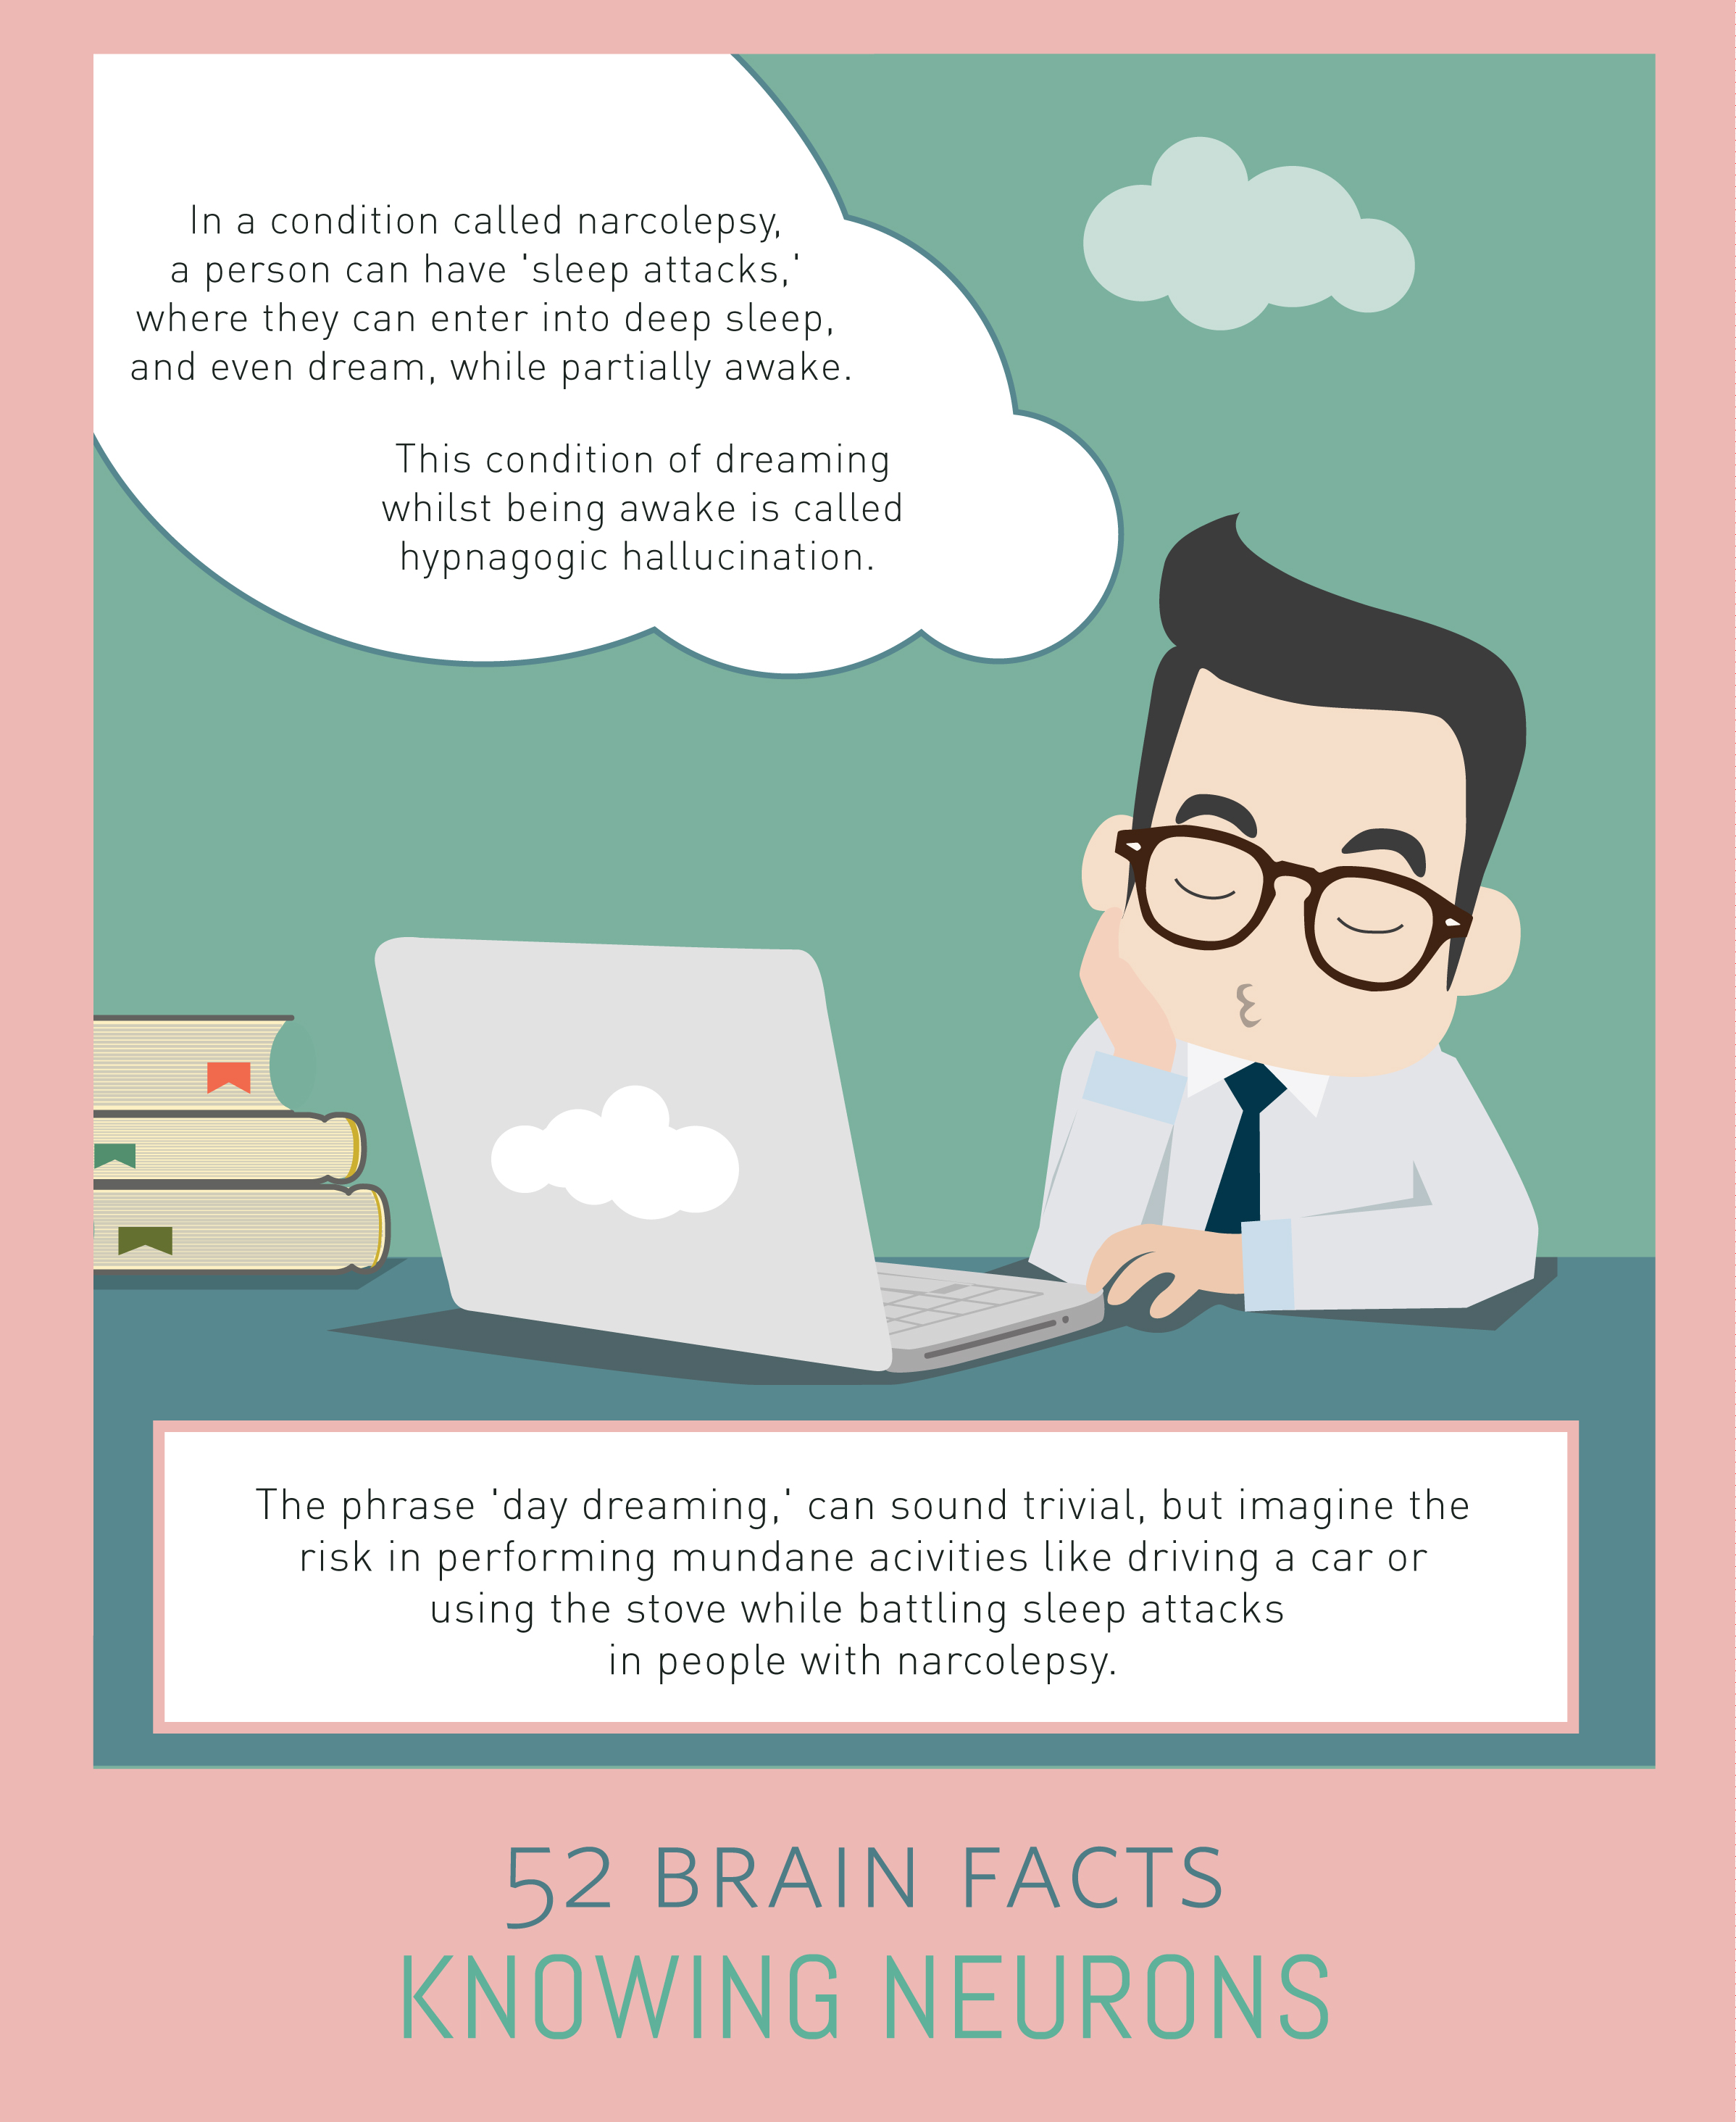 Myth or Fact? 'Day dreaming' is just a term for not paying attention. We only dream during sleep.